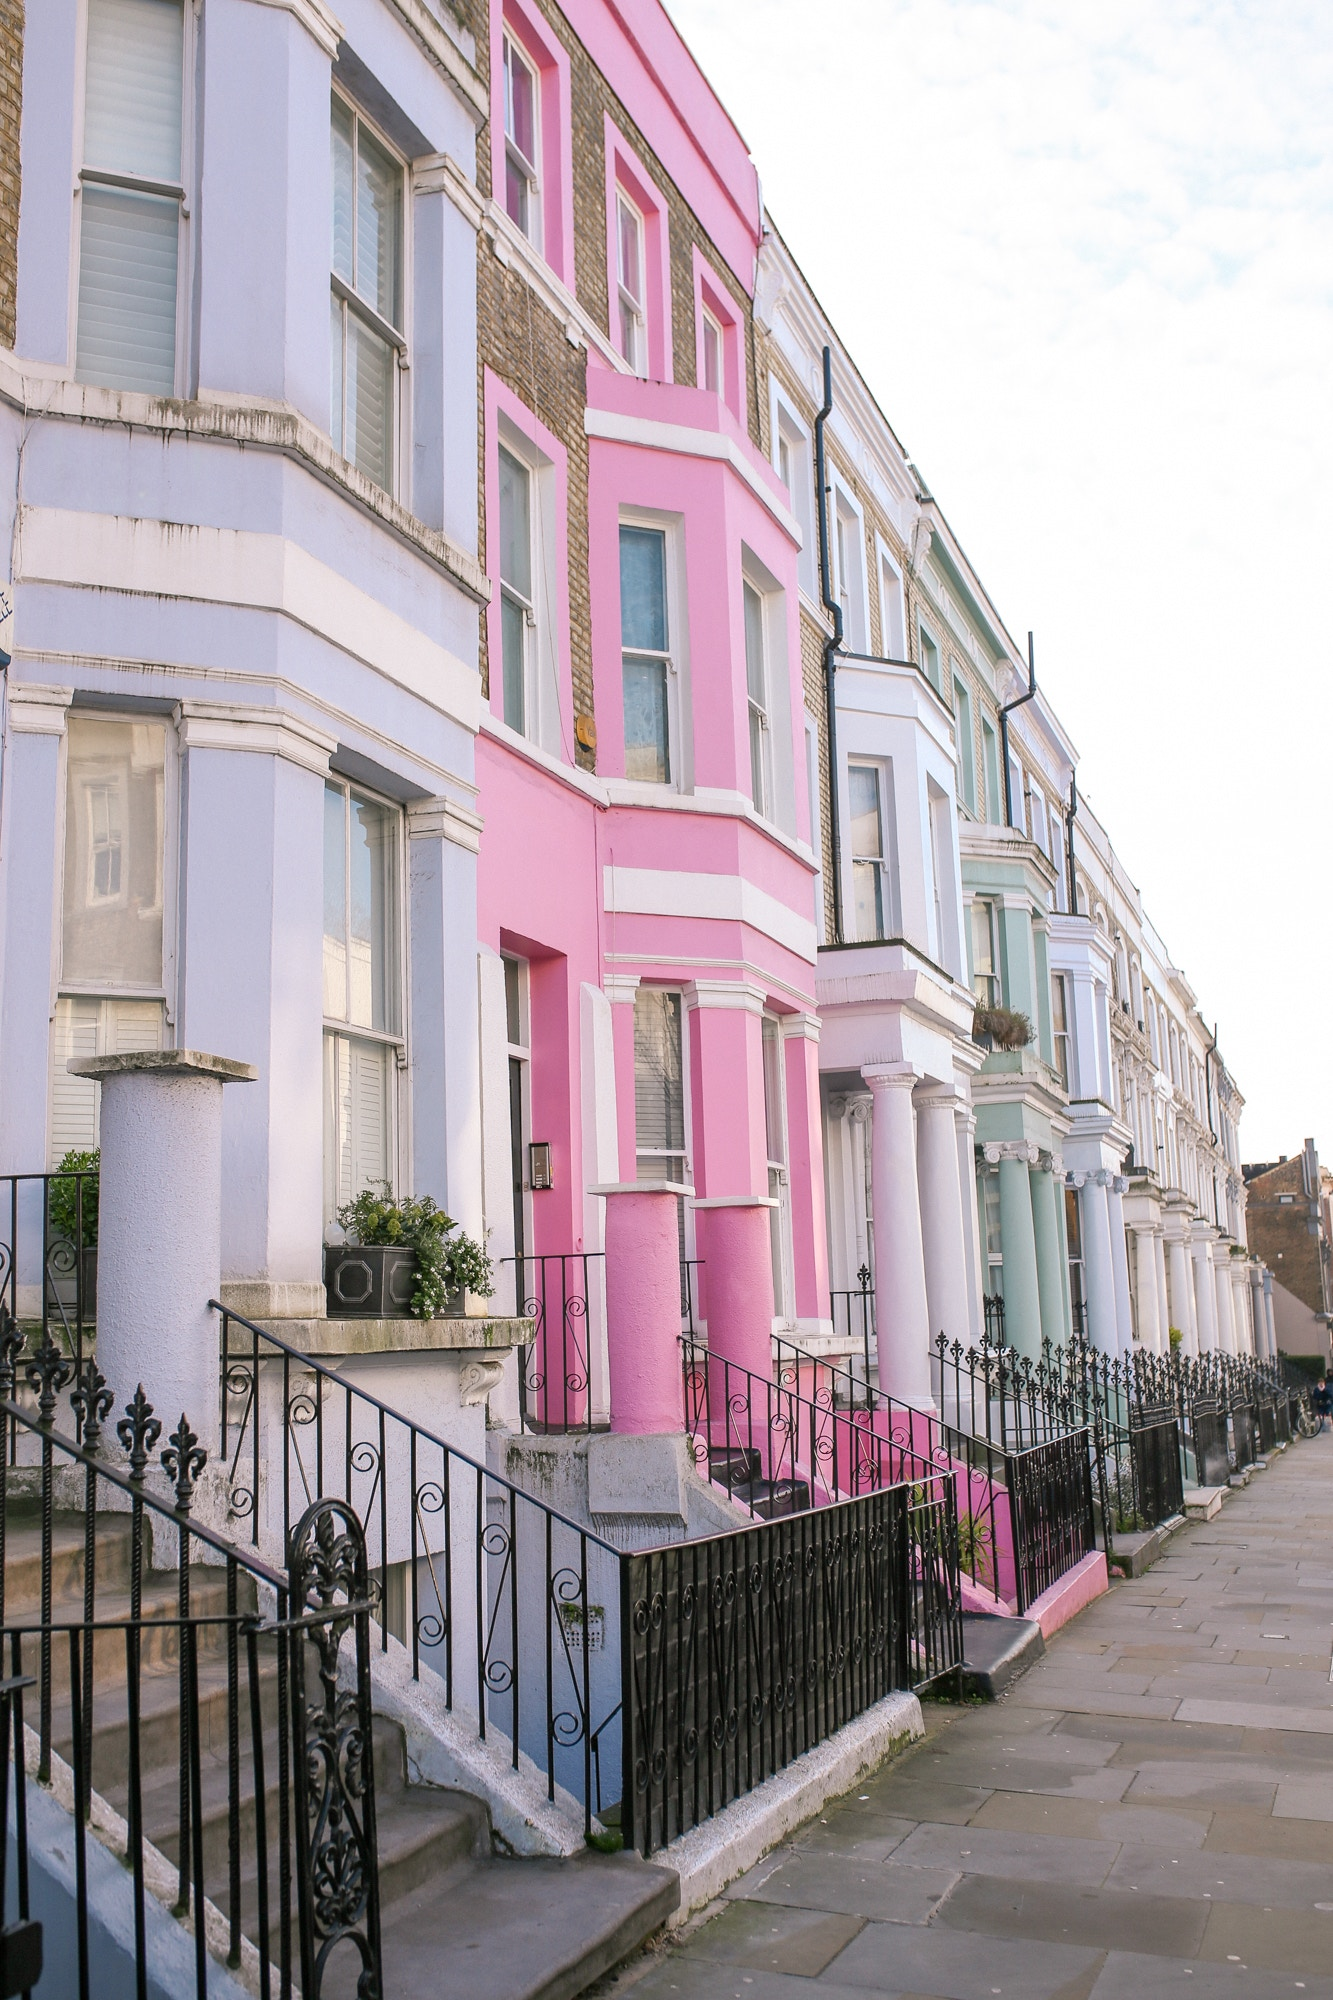 Notting Hill - the best pastel houses for Instagram photos.